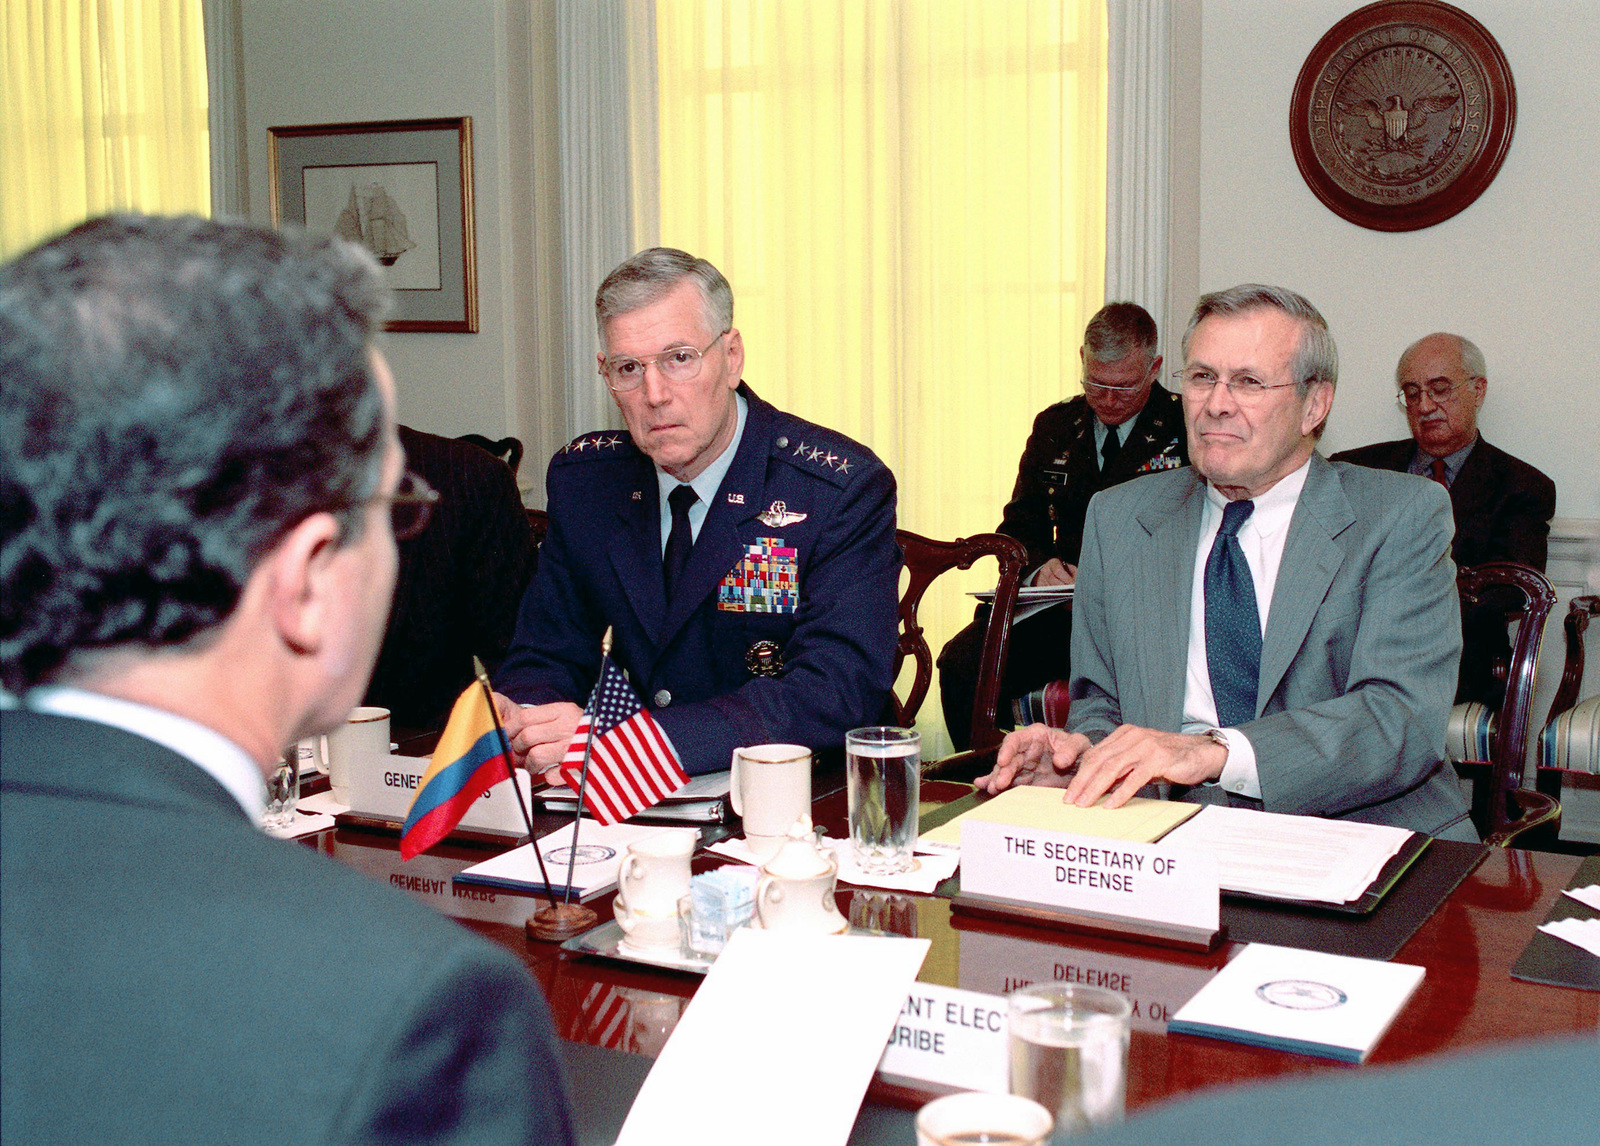 US Air Force (USAF) General (GEN) Richard B. Myers (left) Chairman of the Joint Chiefs of STAFF, and US Secretary of Defense, The Honorable Donald H. Rumsfeld, meet with Republic of Columbia, President-elect Alvaro Uribe, (foreground) during a defense meeting held at the Pentagon in Washington, District of Columbia (DC)